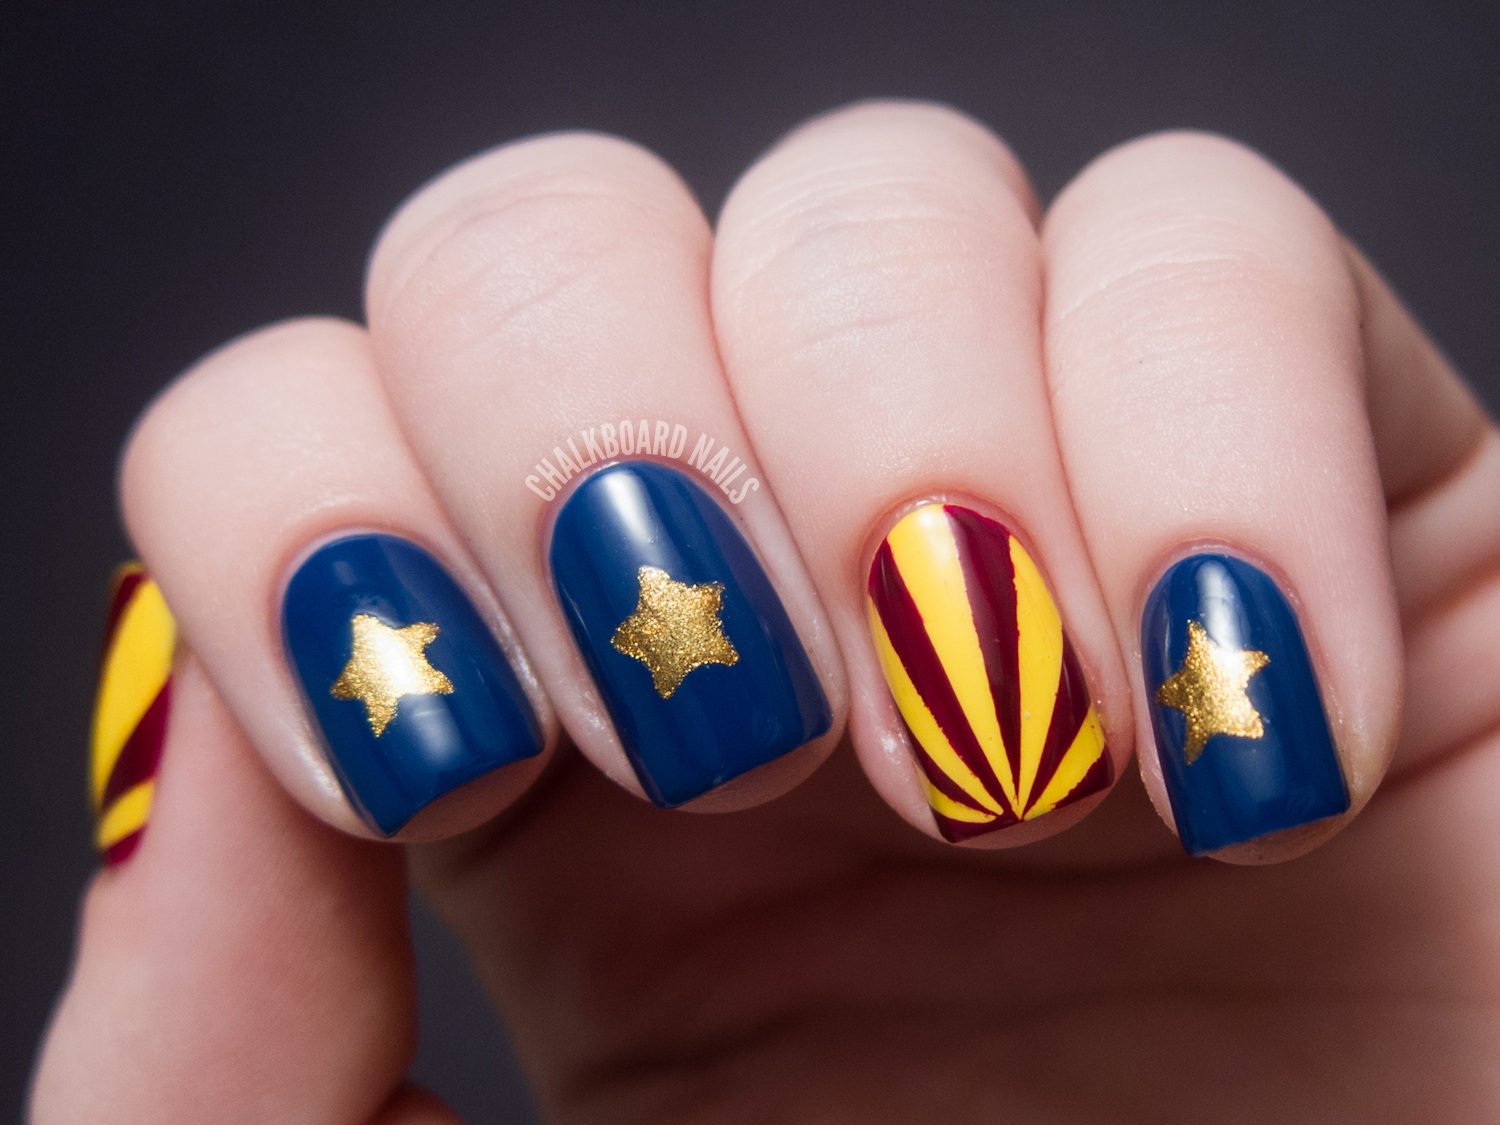 31DC2012: Day 28, Inspired by a Flag   Chalkboard Nails   Nail Art Blog